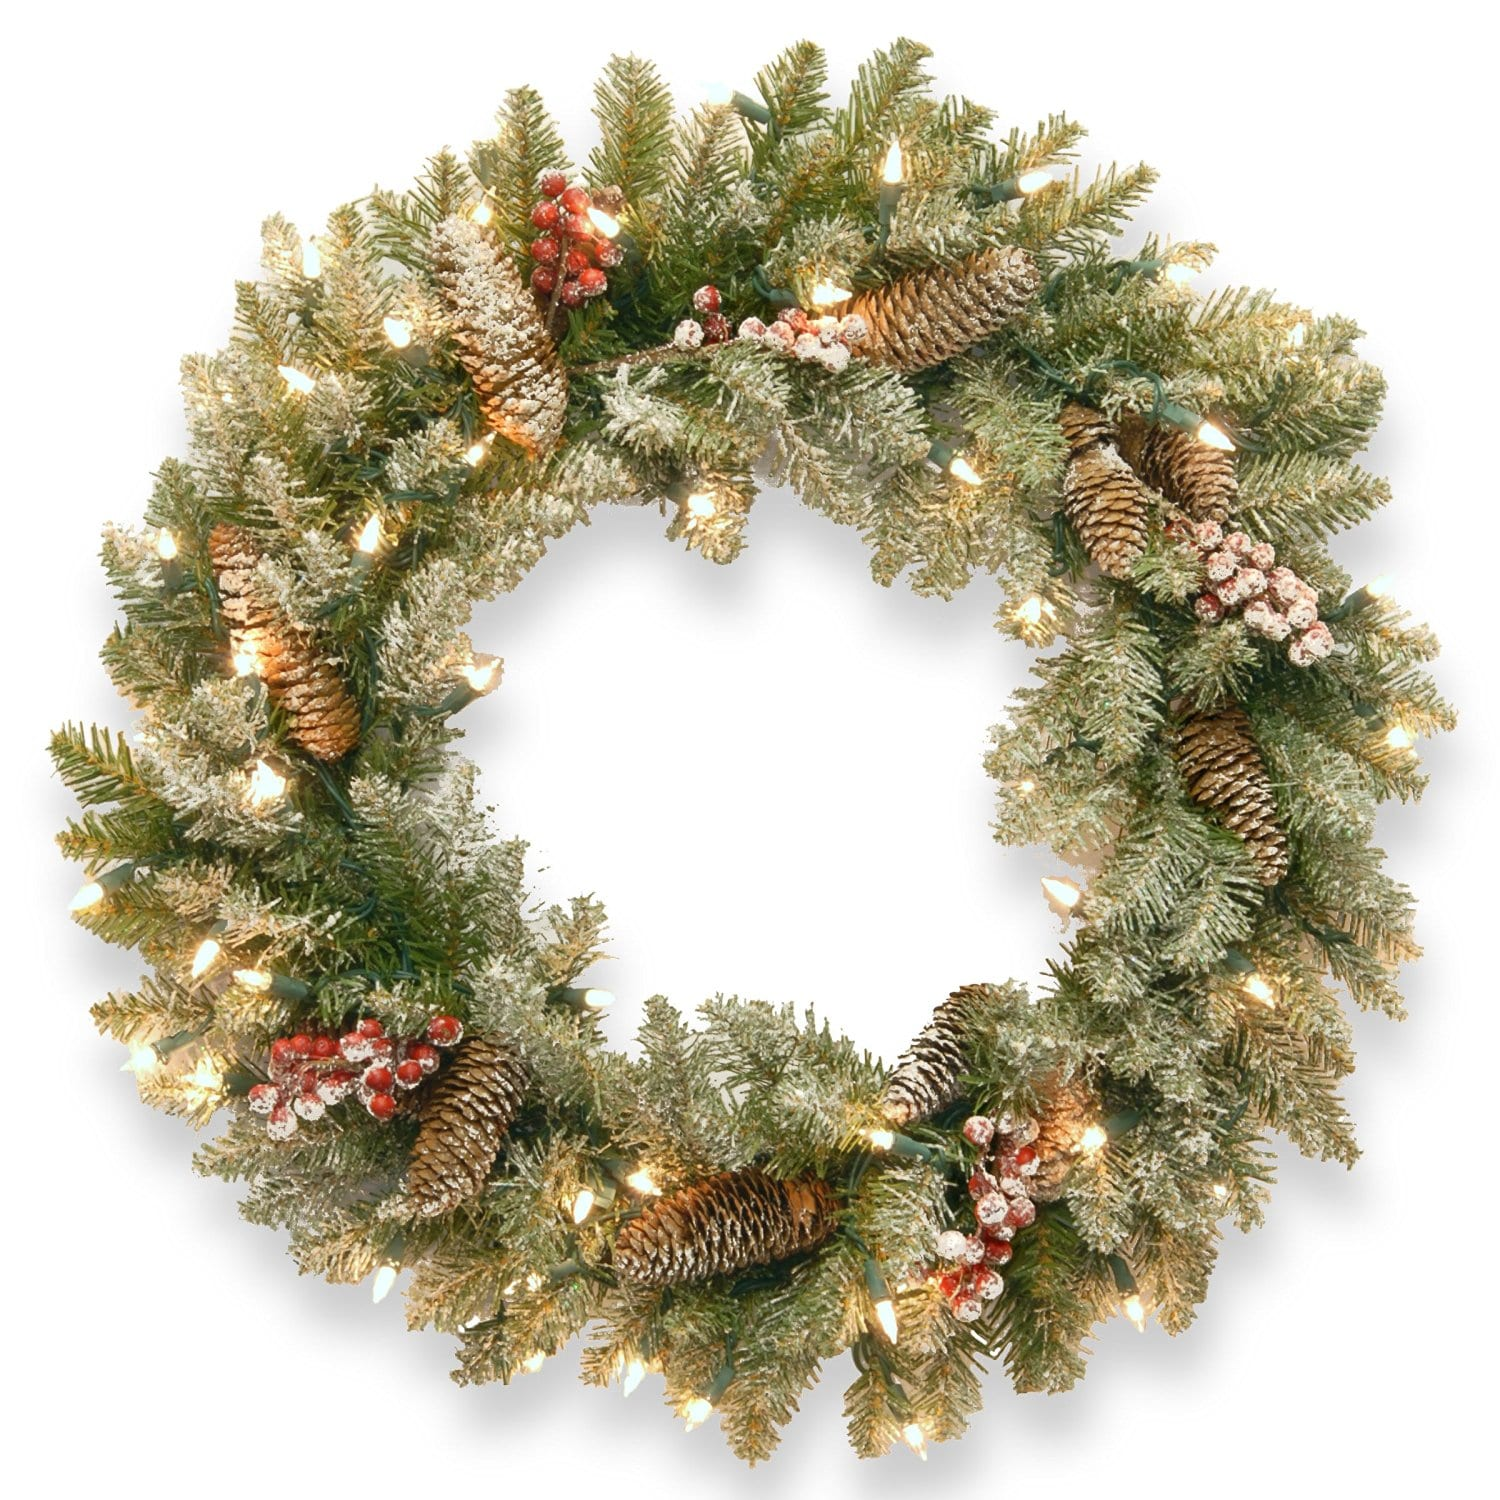 best artificial christmas wreath of 2018 national tree 24 dunhill fir buy it here for 40